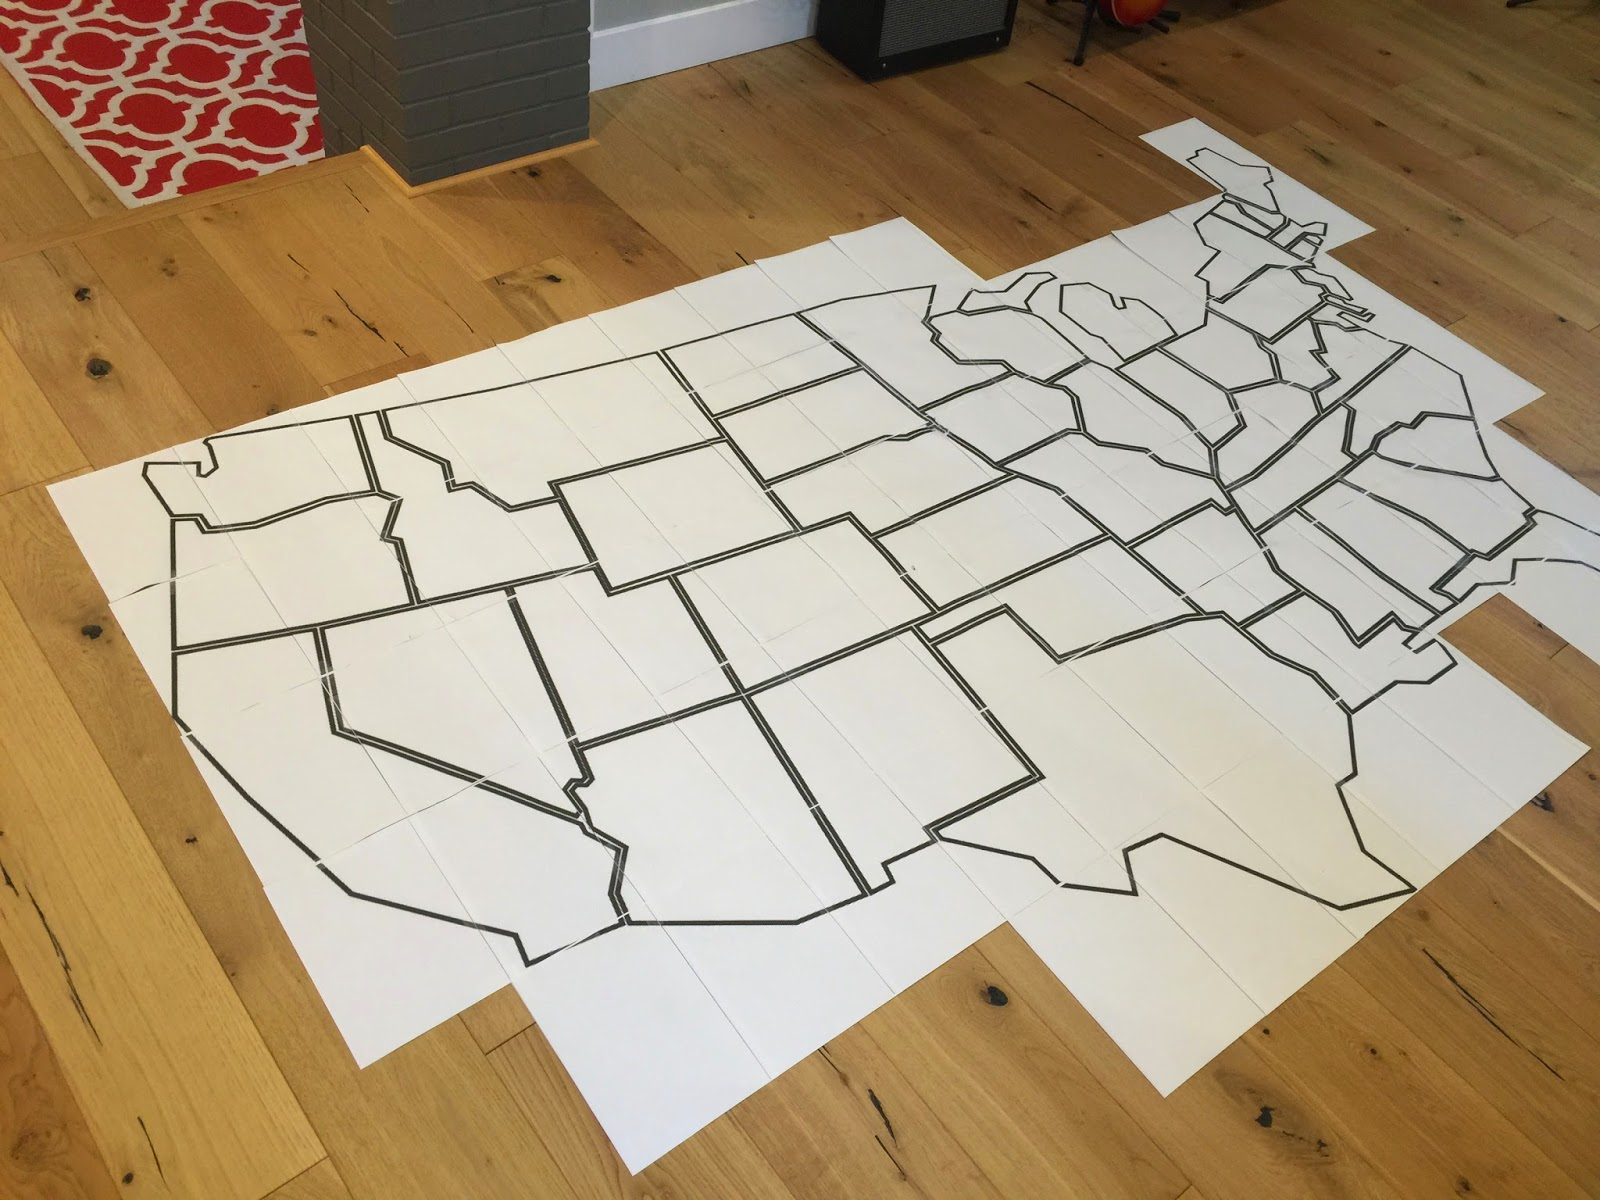 it cuts the photo into 8 1 2x11 pieces i printed out the map on 84 sheets and taped them together into a giant full scale bookshelf template